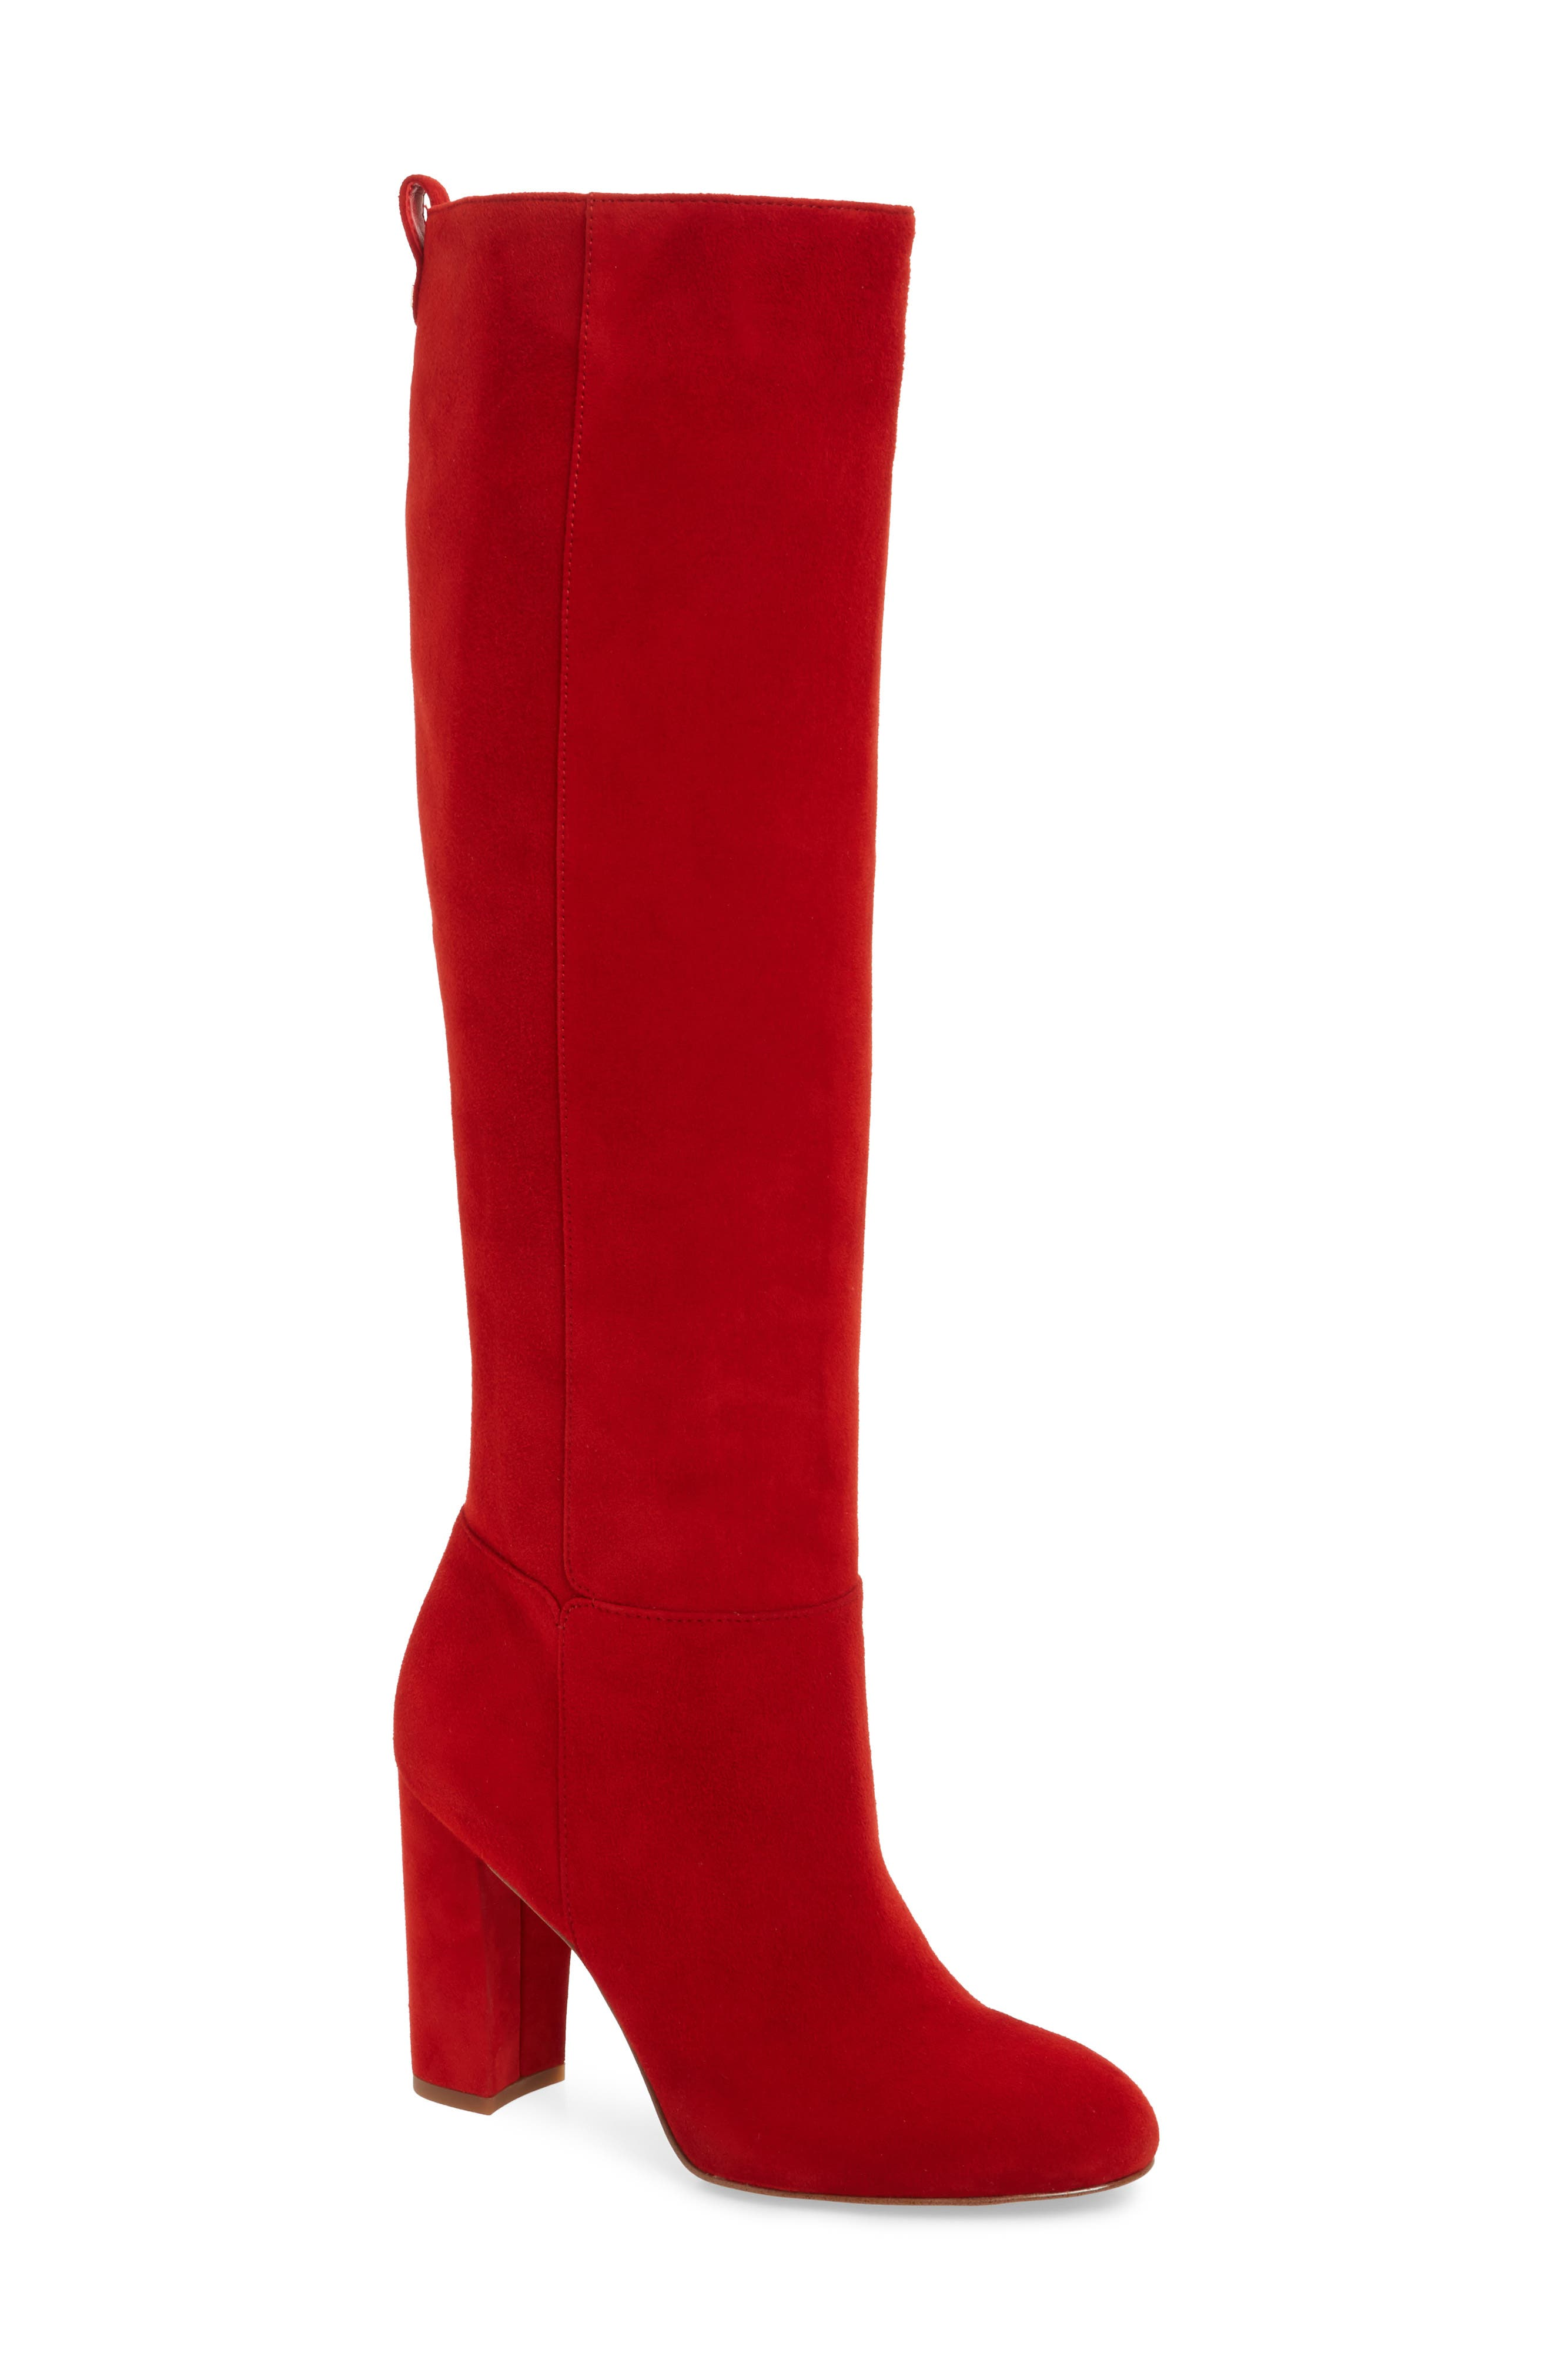 Caprice Knee-High Boot,                         Main,                         color, CANDY RED SUEDE